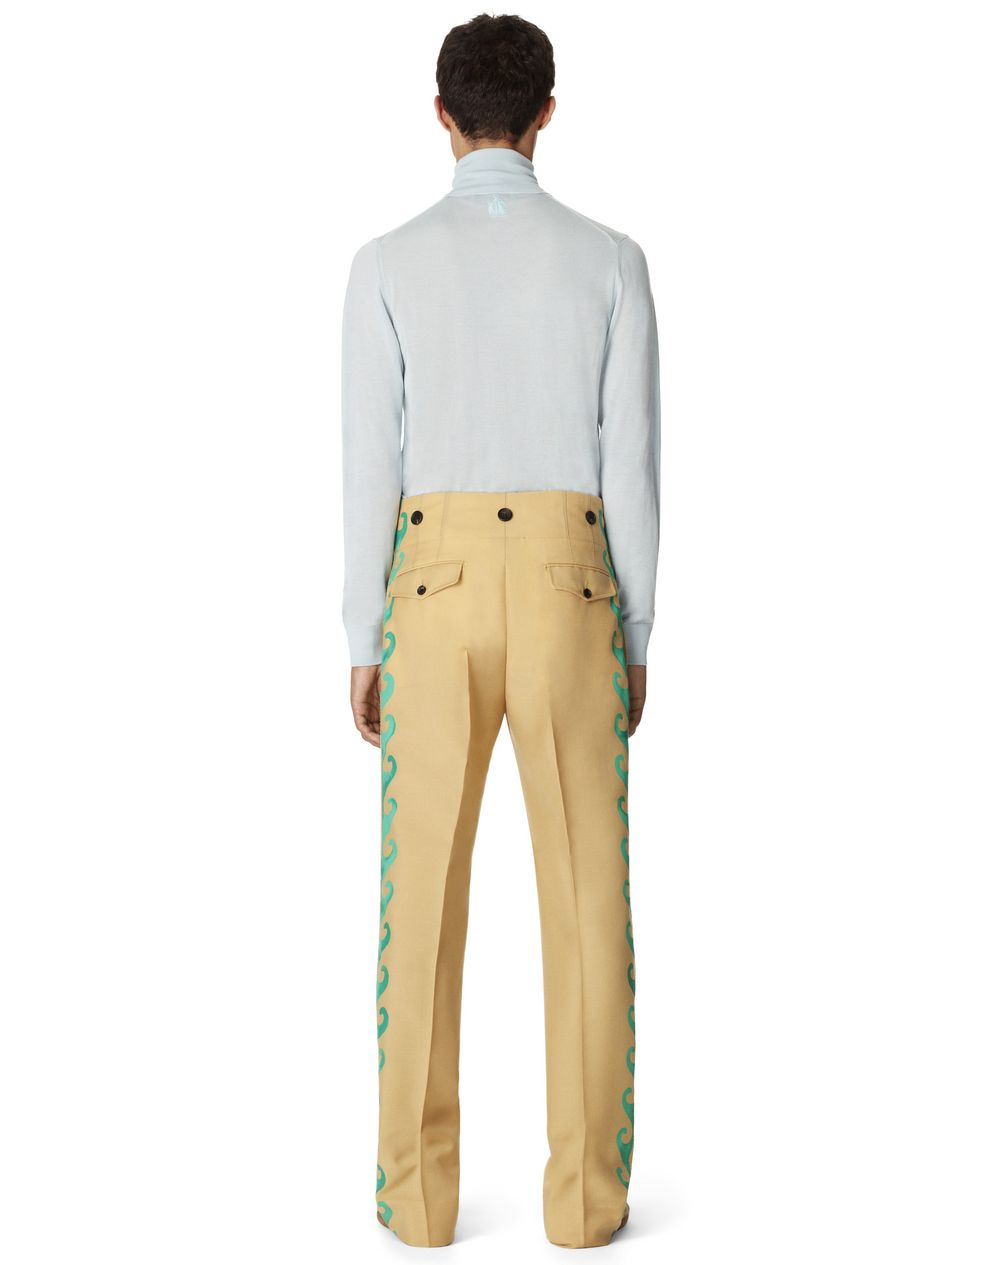 WOOL AND MOHAIR PANTS - Lanvin